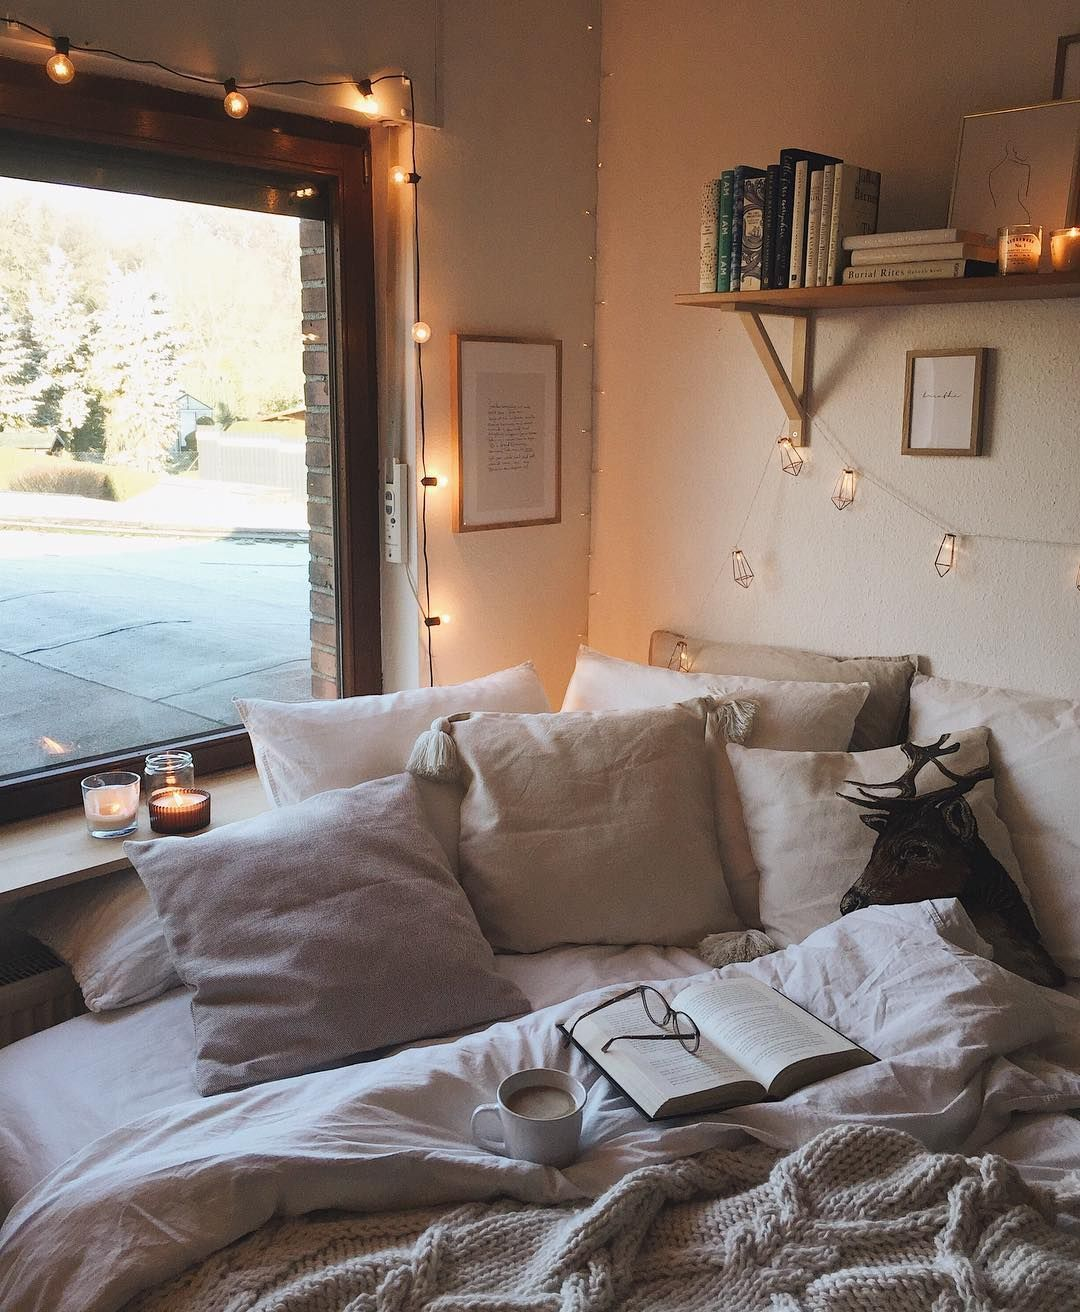 Image May Contain Bedroom And Indoor Cozy Room Bedroom Home Decor Bedroom Bedroom Design